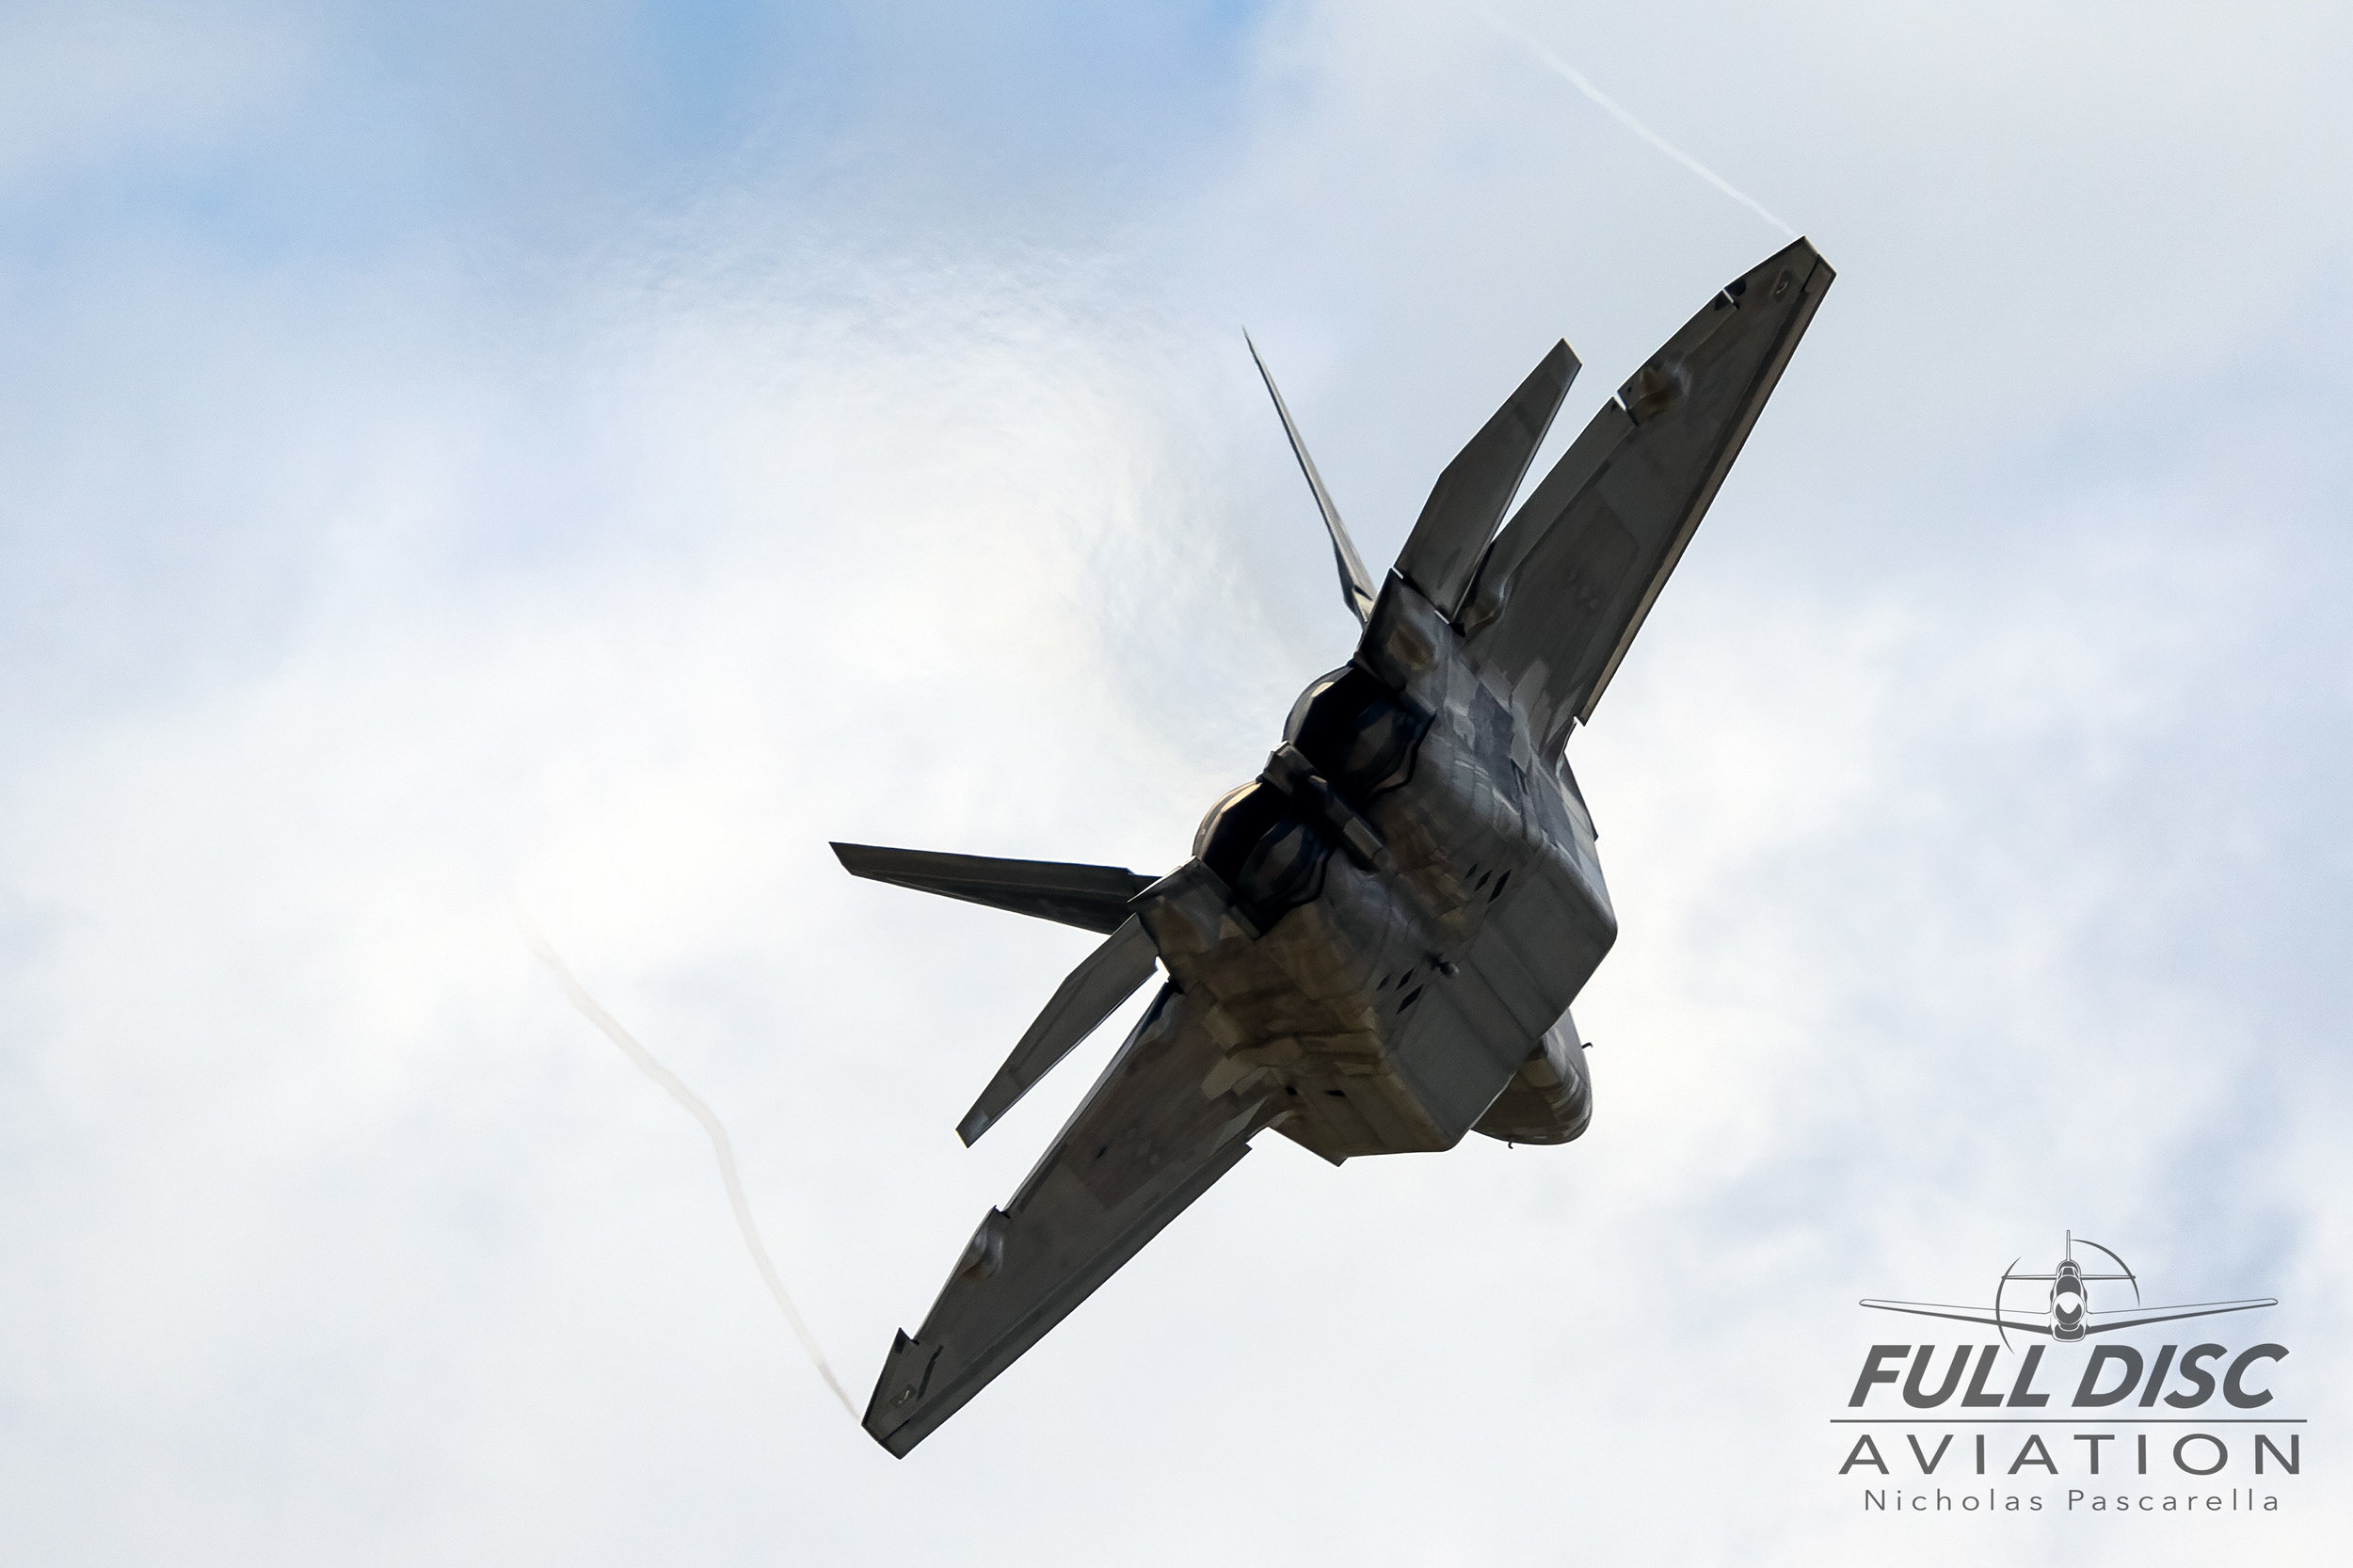 f22_f22demoteam_nickpascarella_fulldiscaviation_f22raptor_nicholaspascarella.jpg